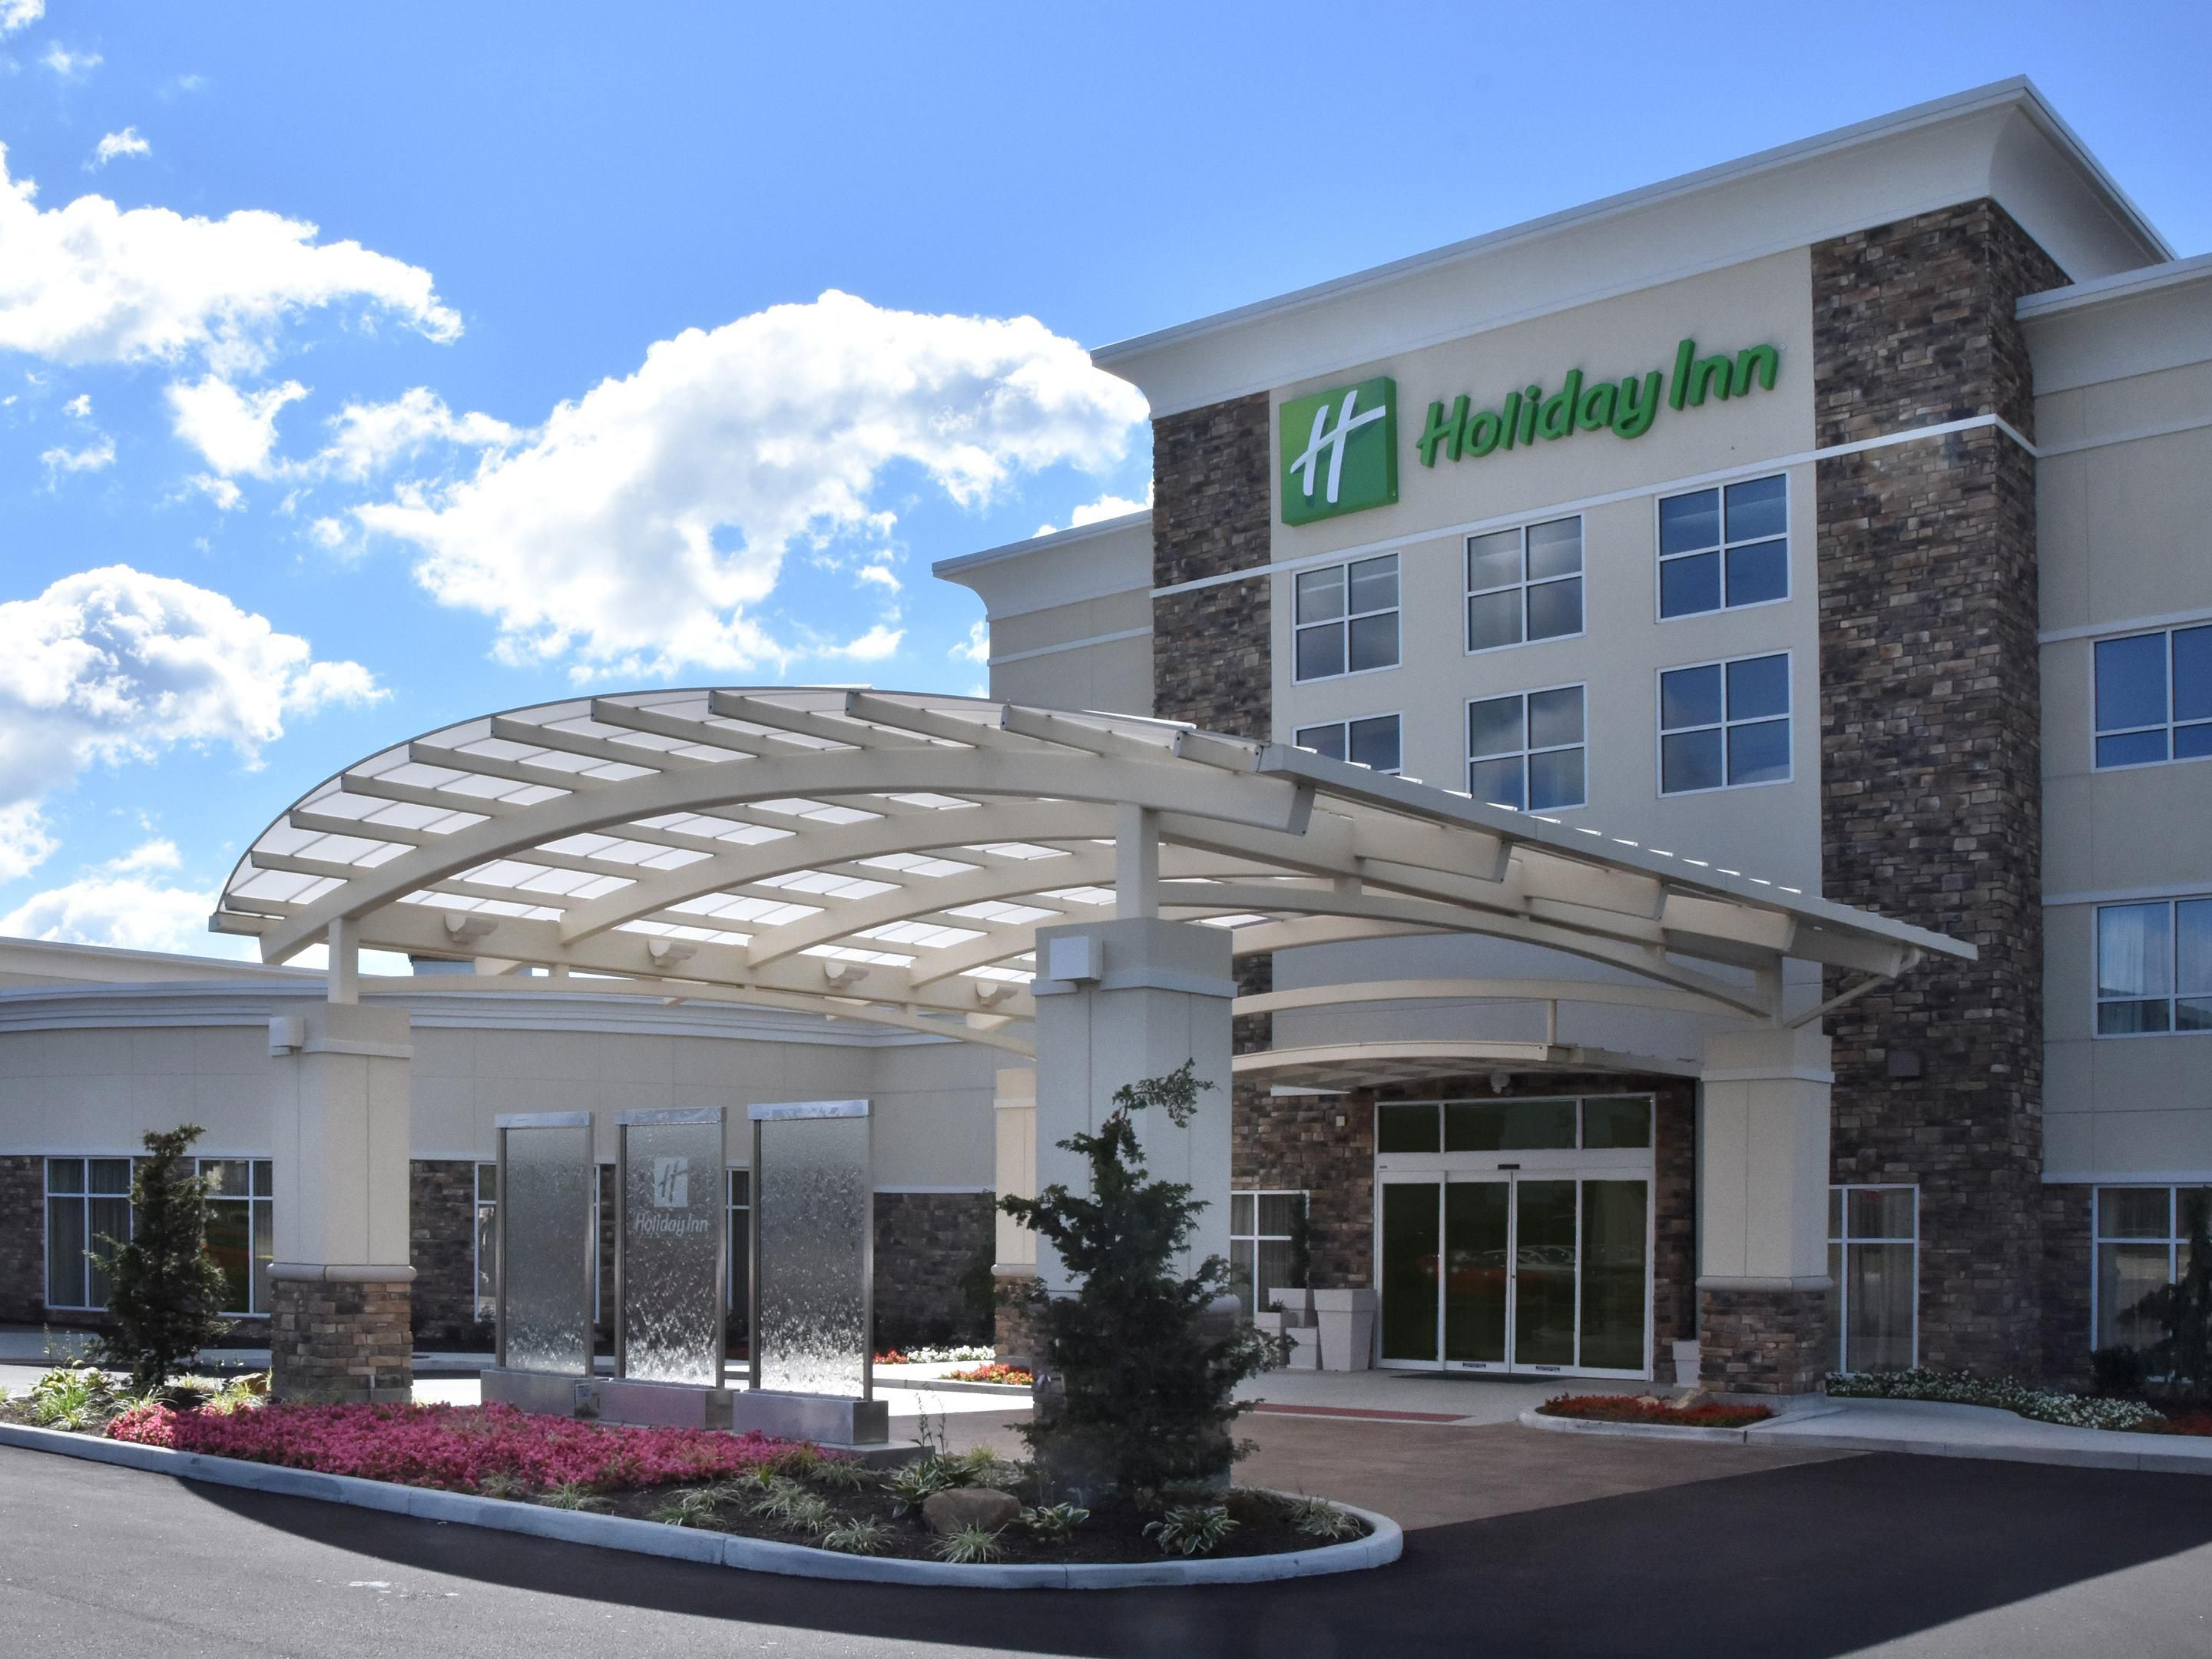 holiday inn canton belden village map driving directions - Olive Garden Canton Ohio